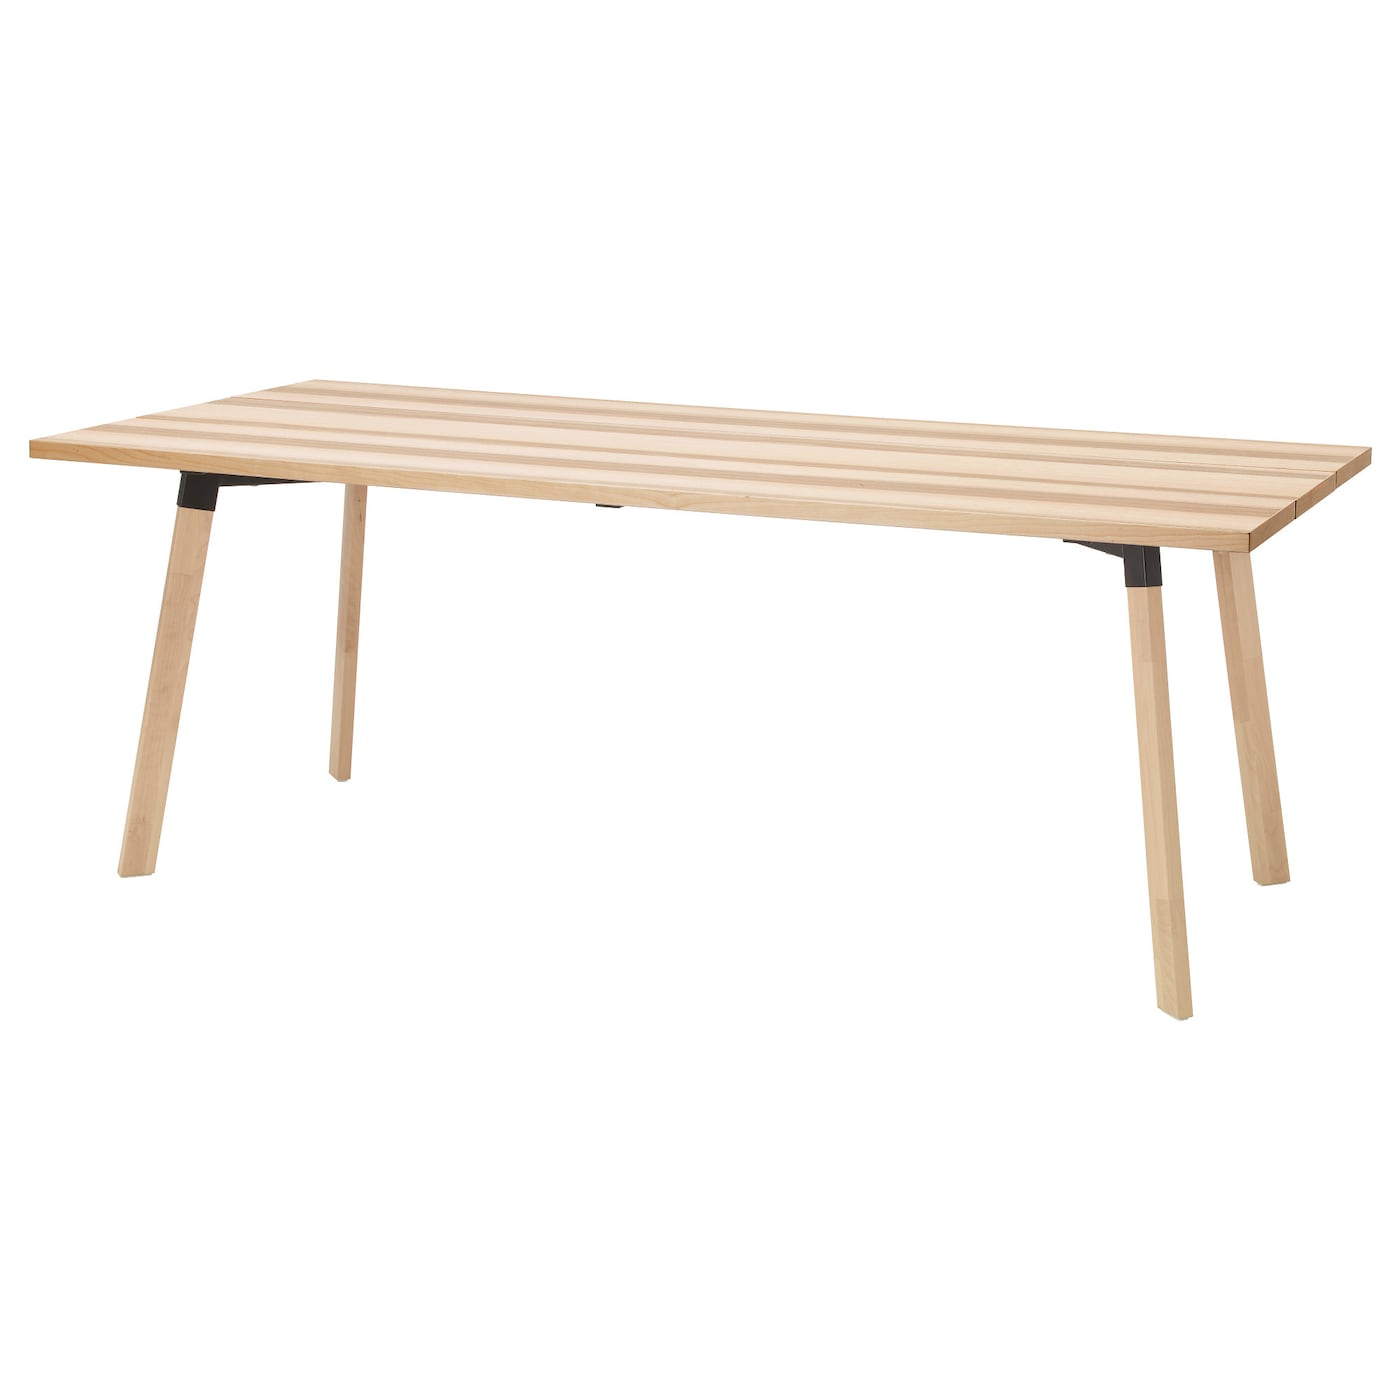 ypperlig table ash 200x90 cm ikea